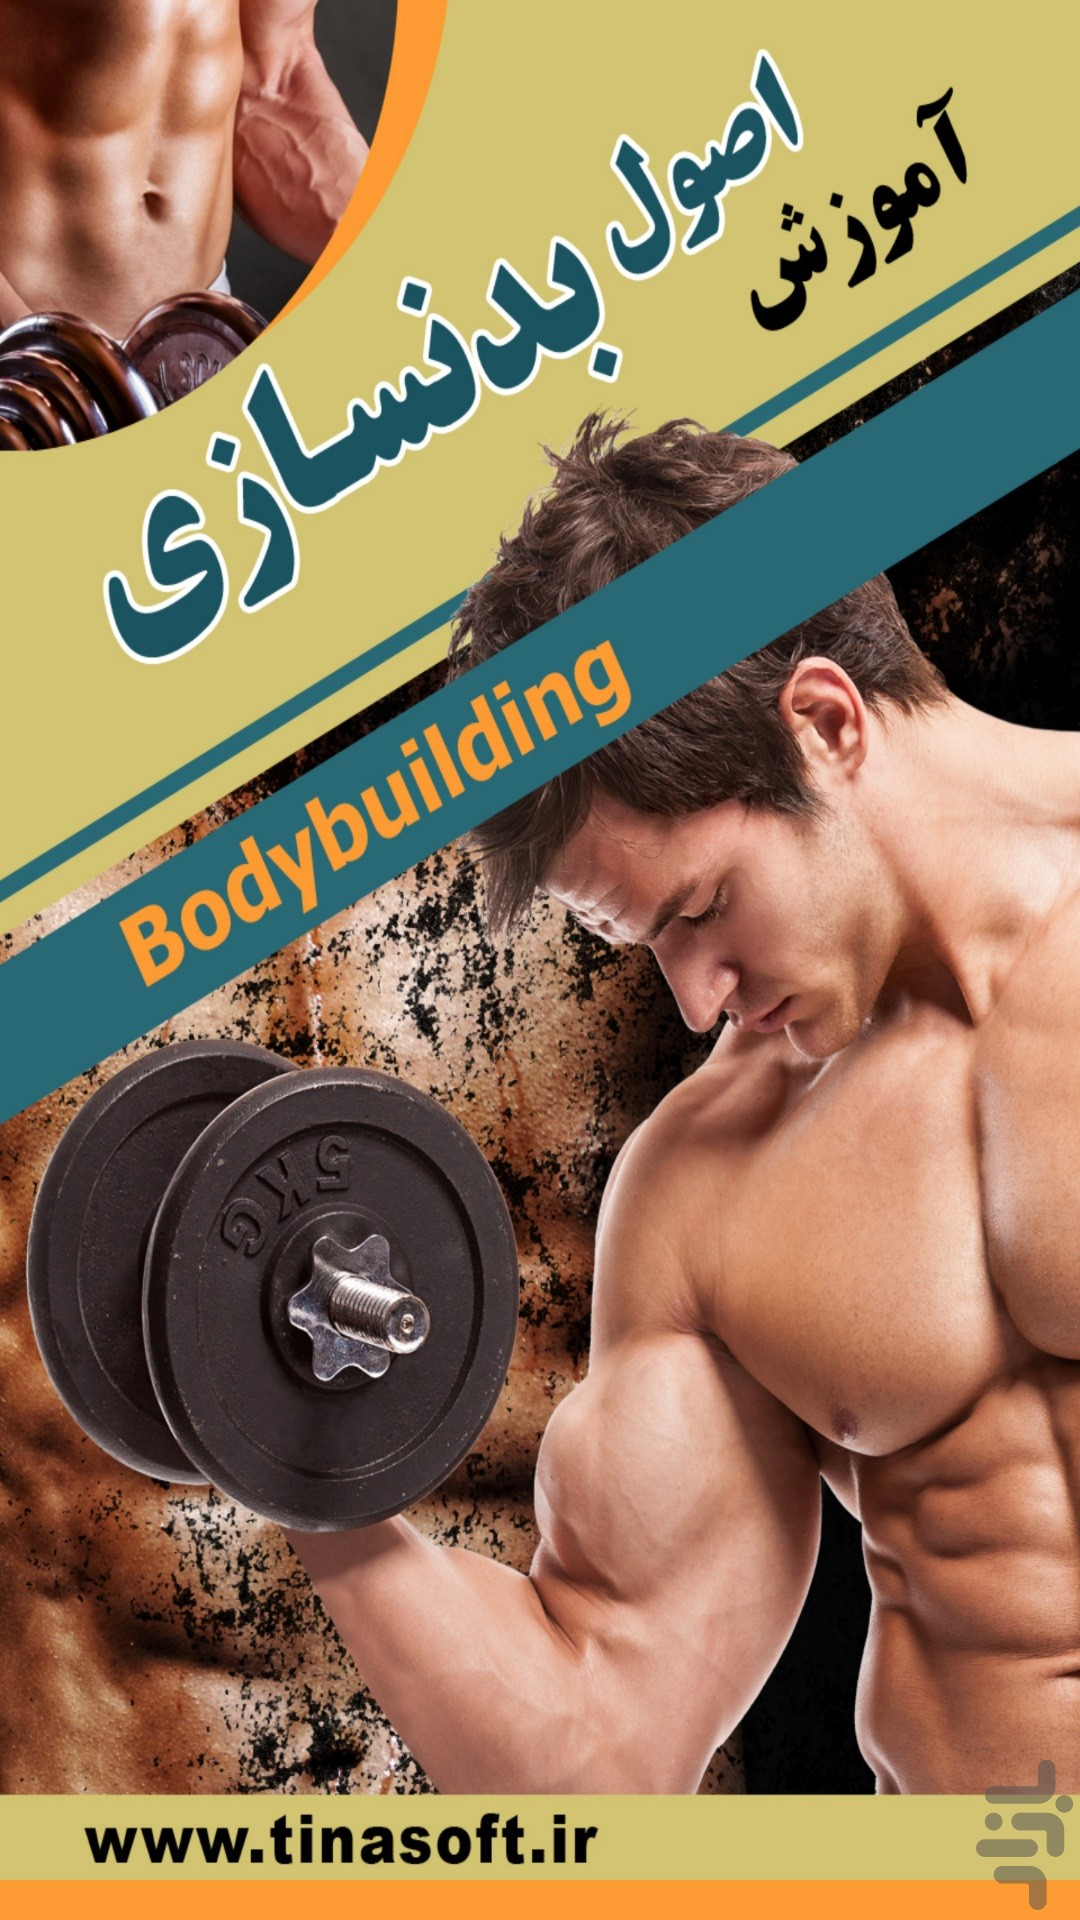 Learn the basics of bodybuilding